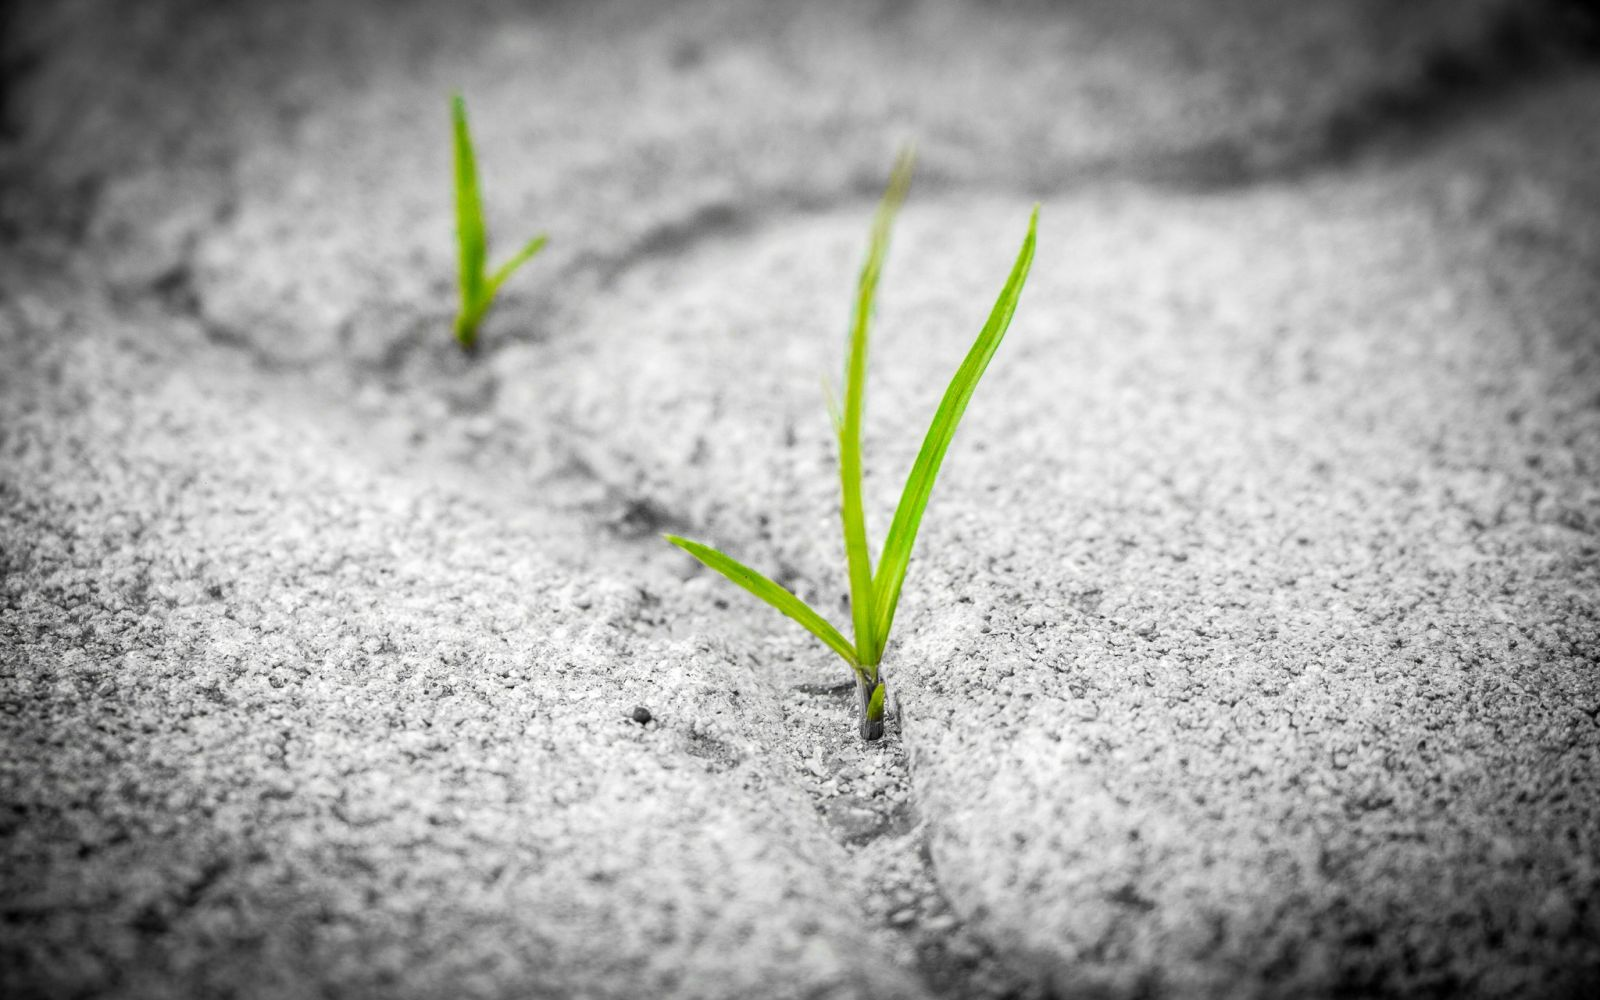 green plants sprouting from gray rocky surface